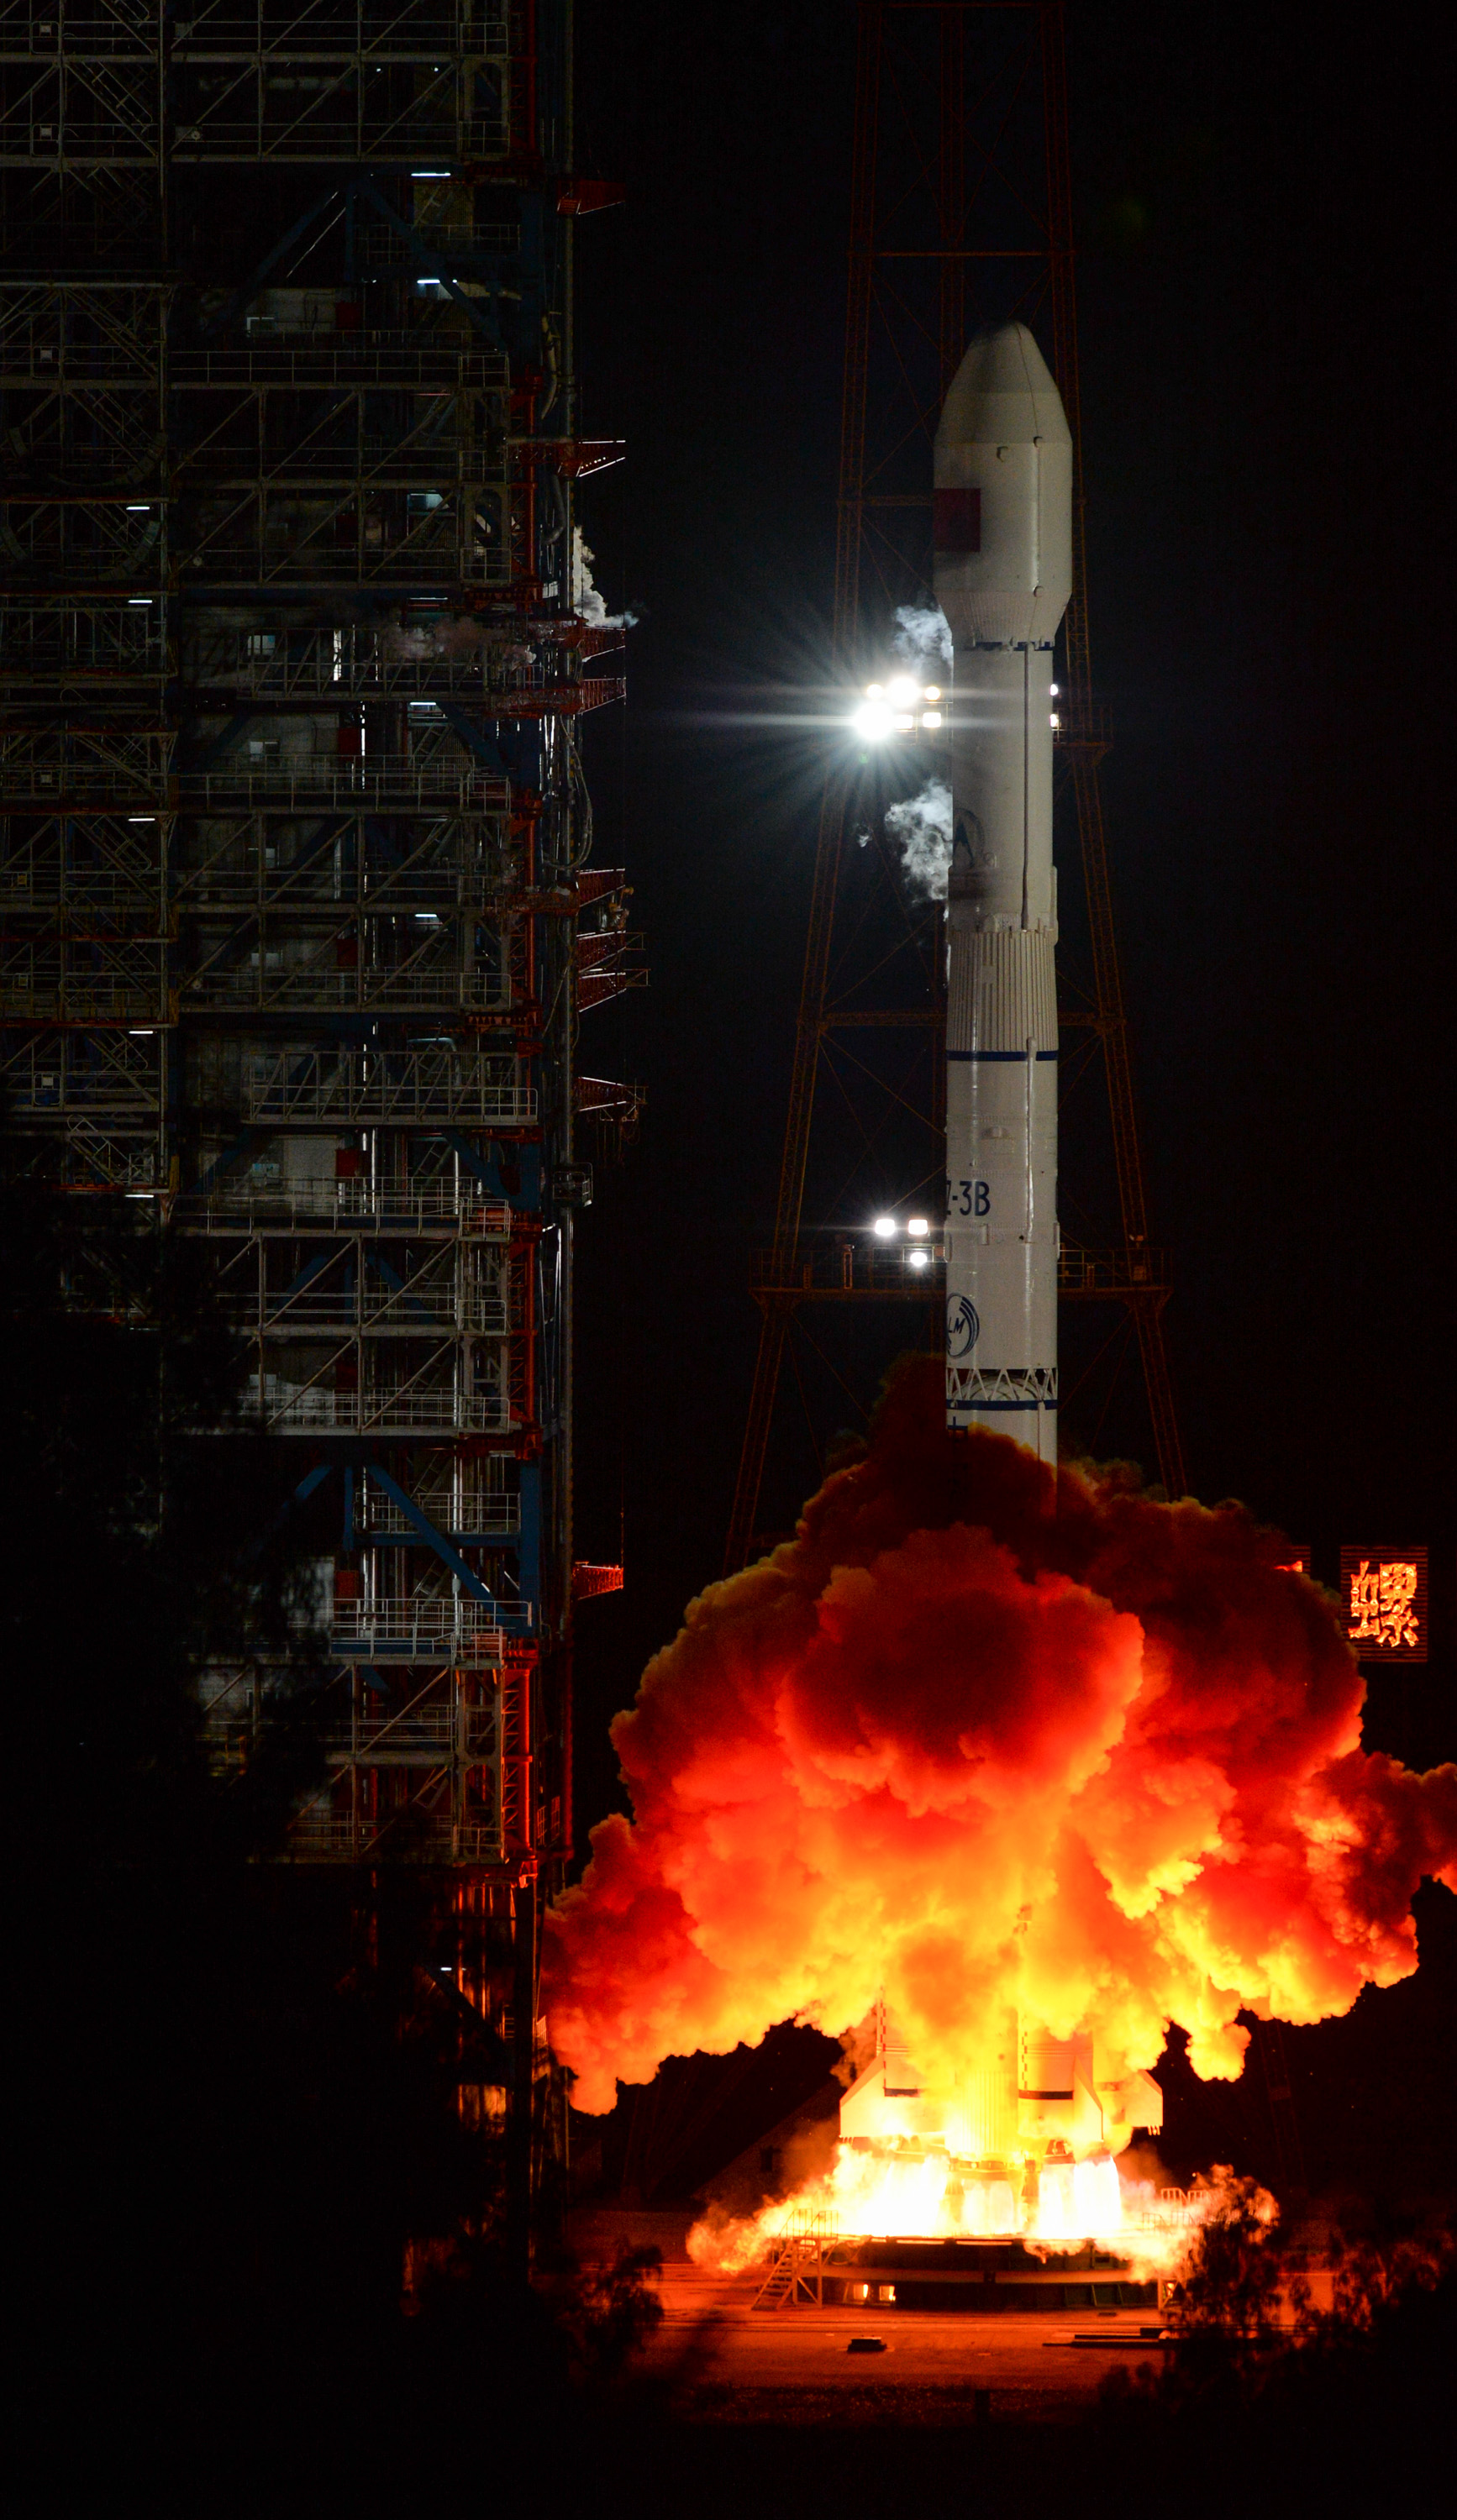 A Chinese Long March 3B rocket, carrying the first Communications Engineering Test Satellite (TXJSSY-1), lifts off from the Xichang Satellite Launch Center on Sept. 12, 2015.